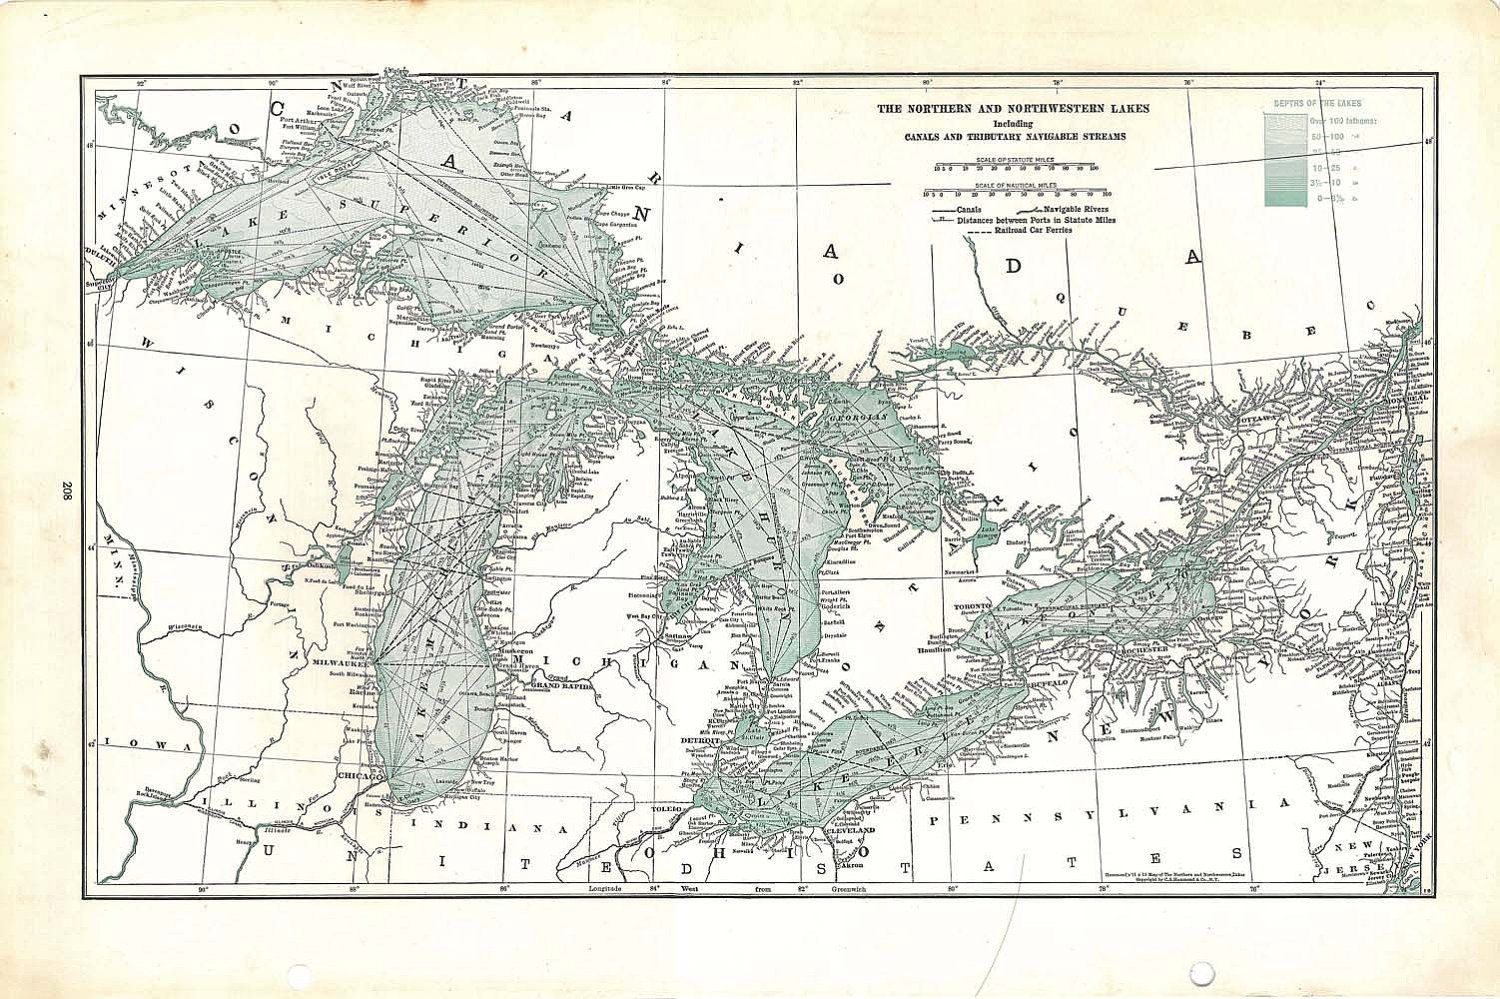 S Vintage Great Lakes Map Except Barren River Lake For The - Great lakes in usa map